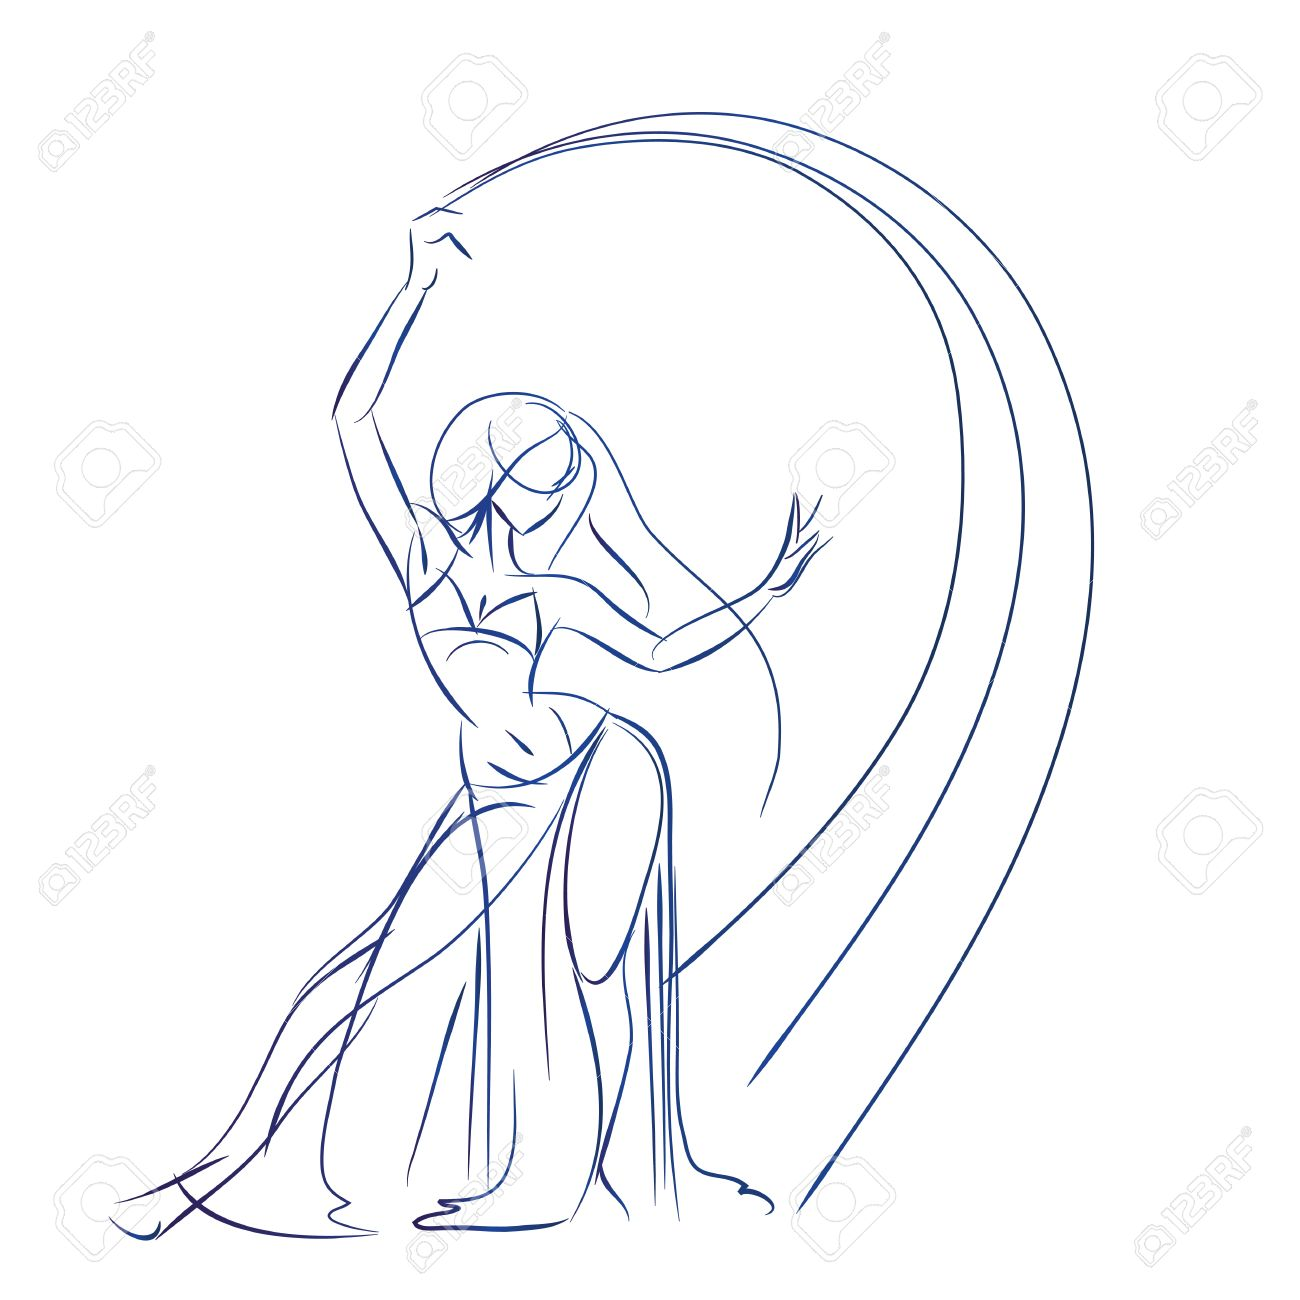 1300x1300 Gesture Sketch Line Drawing Of Belly Dancing Woman Royalty Free